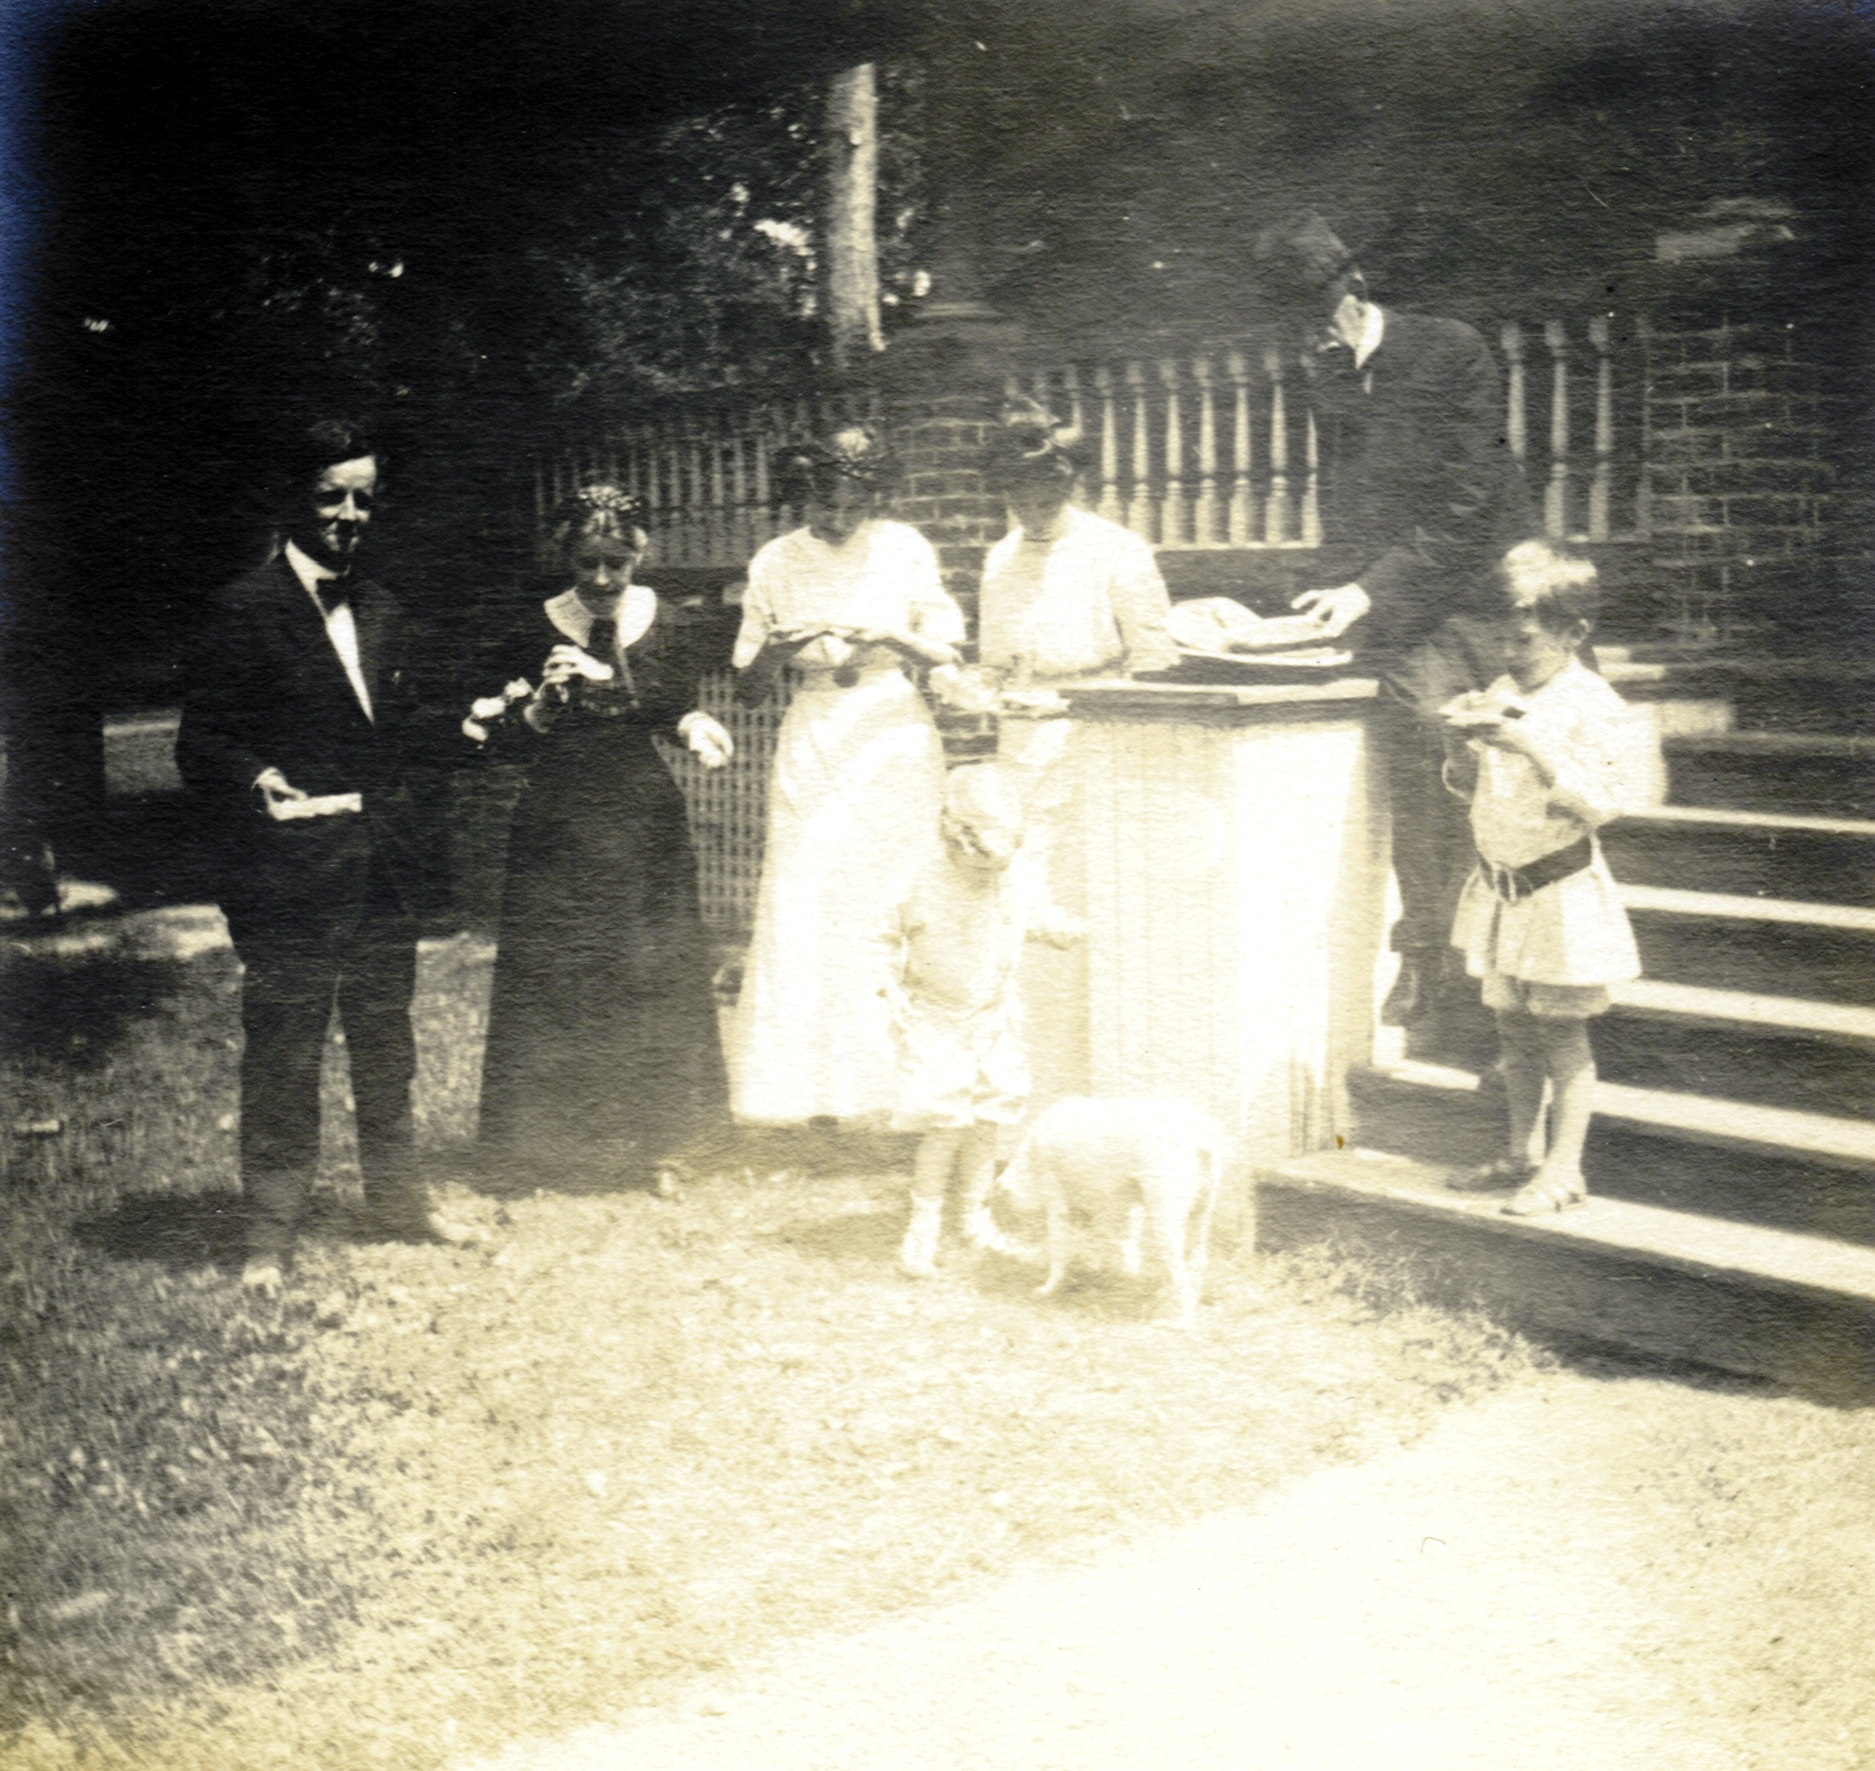 Cora Bolton McBryde (second from left), President McBryde (second from the right), and family enjoy a snack